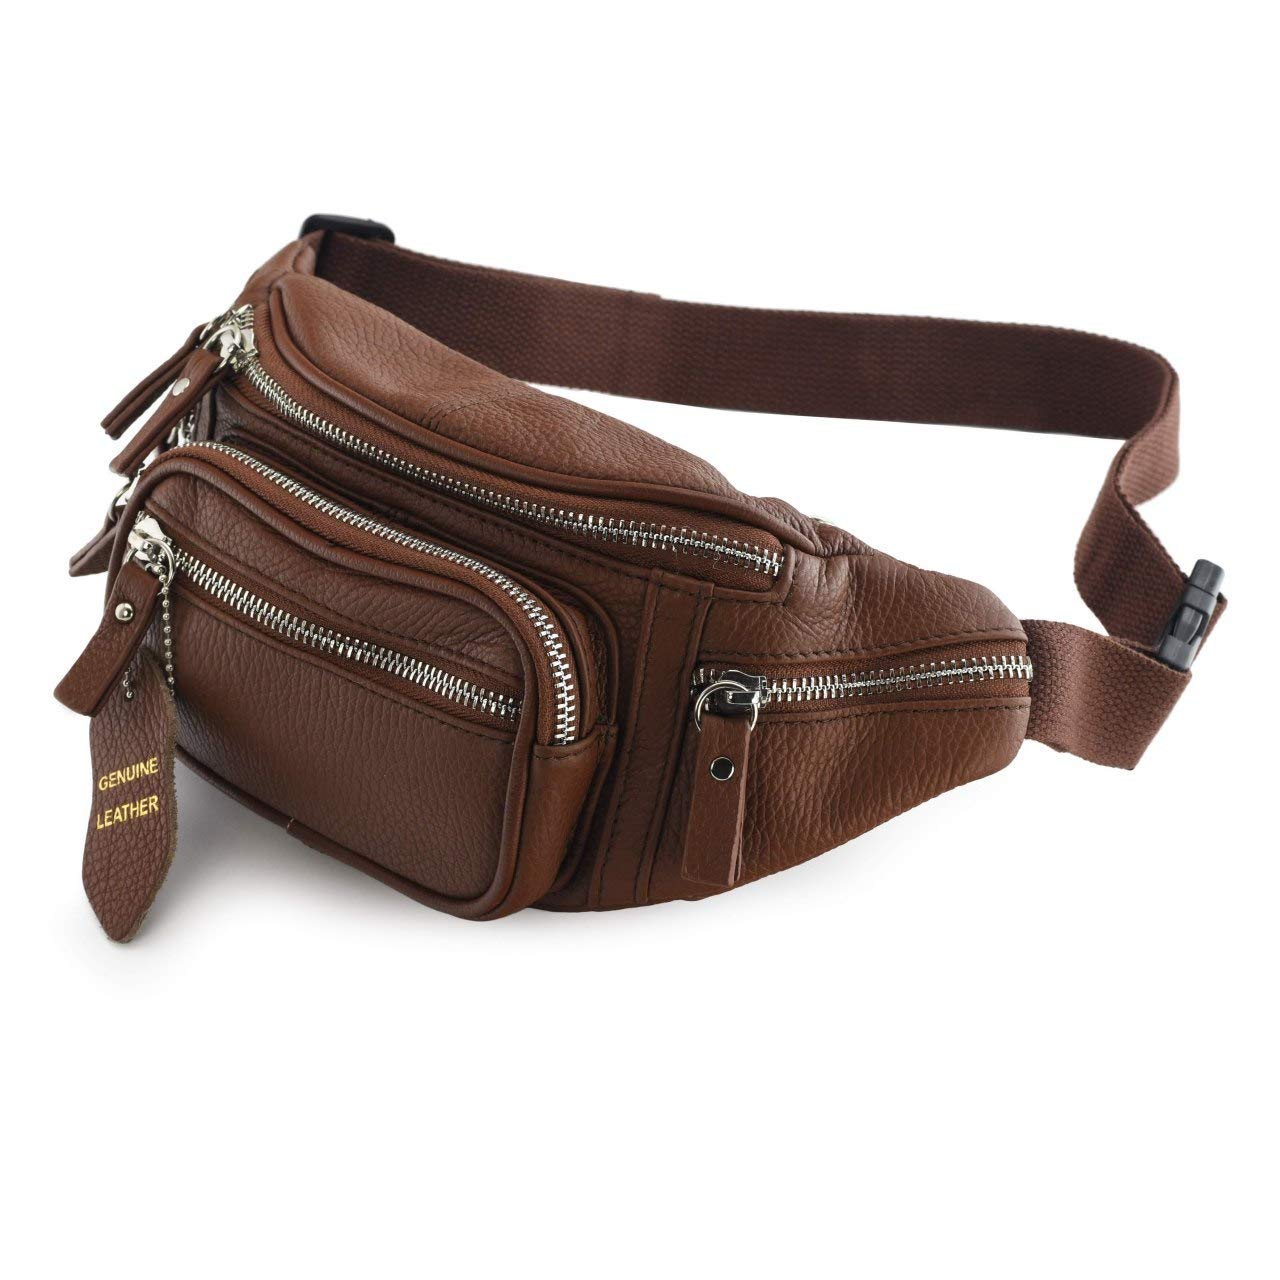 Nabob Leather Fanny Pack, Hip Bum Bag Mens Waist Bag, Unisex, Travel Pouch, Multiple Pocket, Perfect for Camping, Casual Running, Hiking, Cycling, Made (Brown) by Nabob Leather